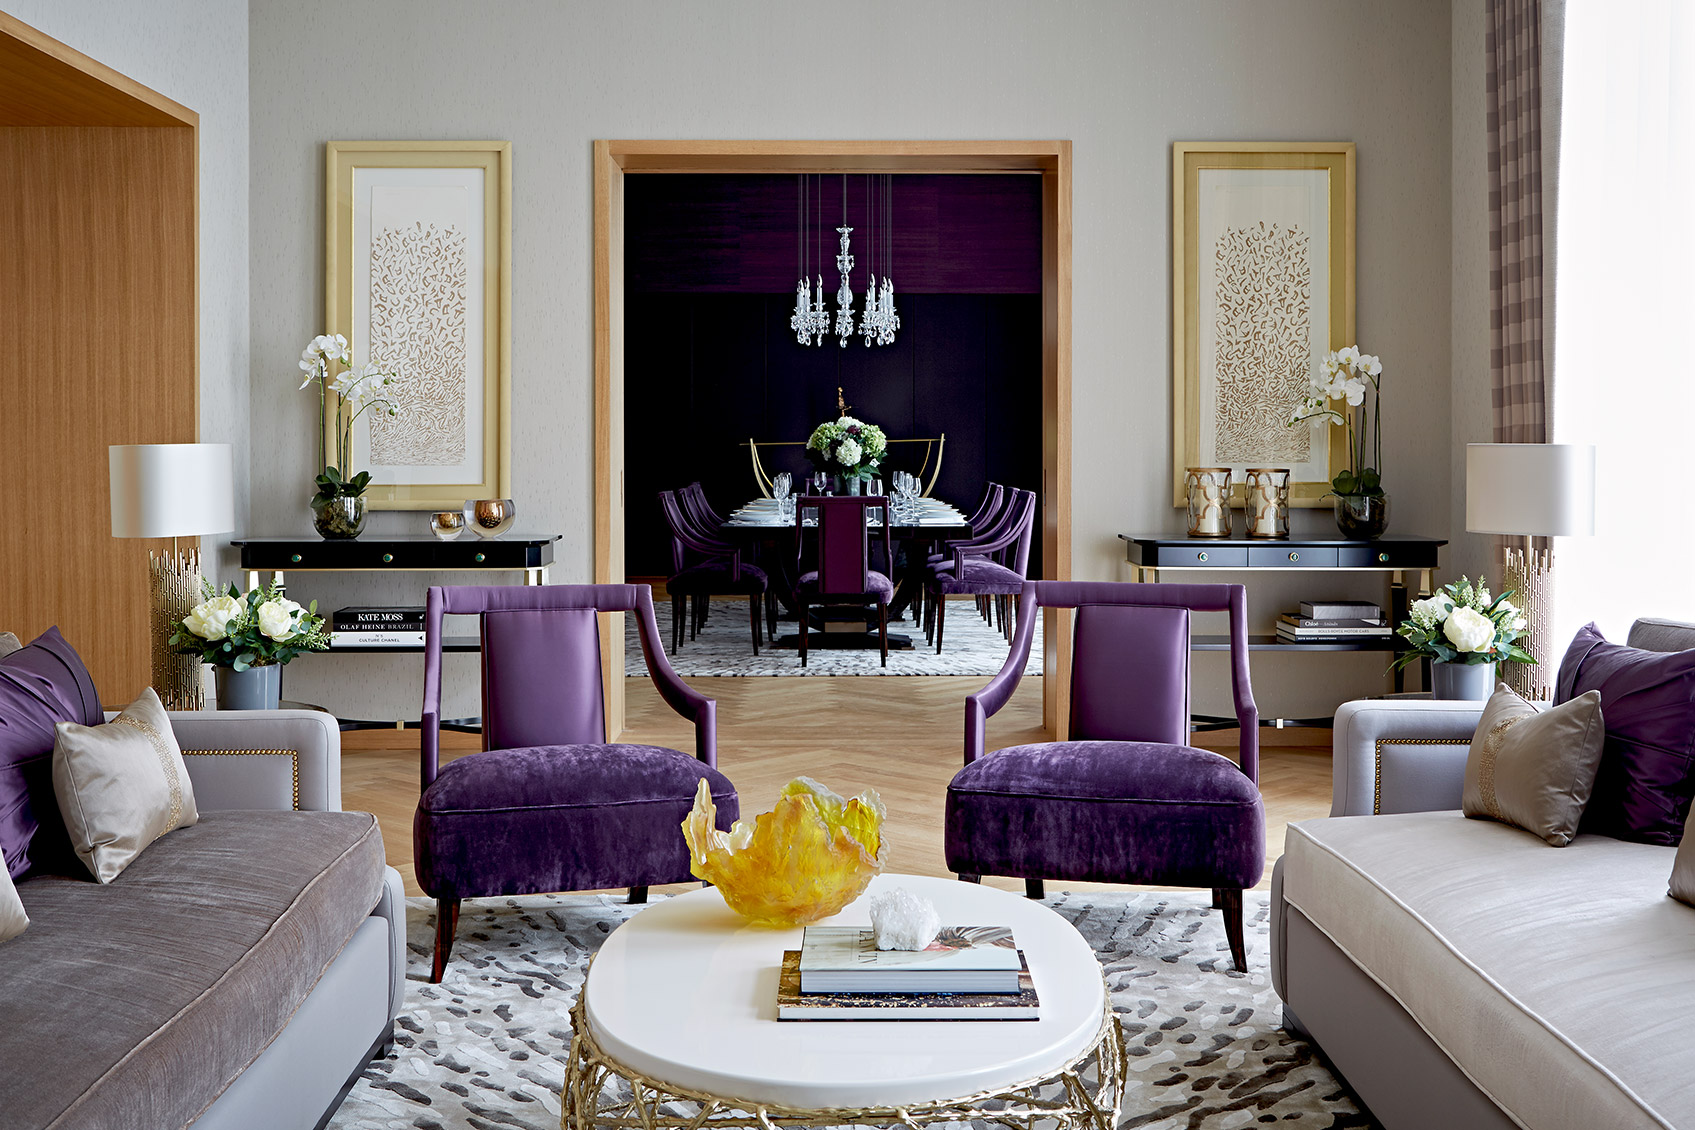 Impeccable Sophie Howard Living Room Design Ideas Living Room Decor Ideas Luxpad Interior Living Room Decorating Interior Living Room Decorating 2018 interior Modern Interior Living Room